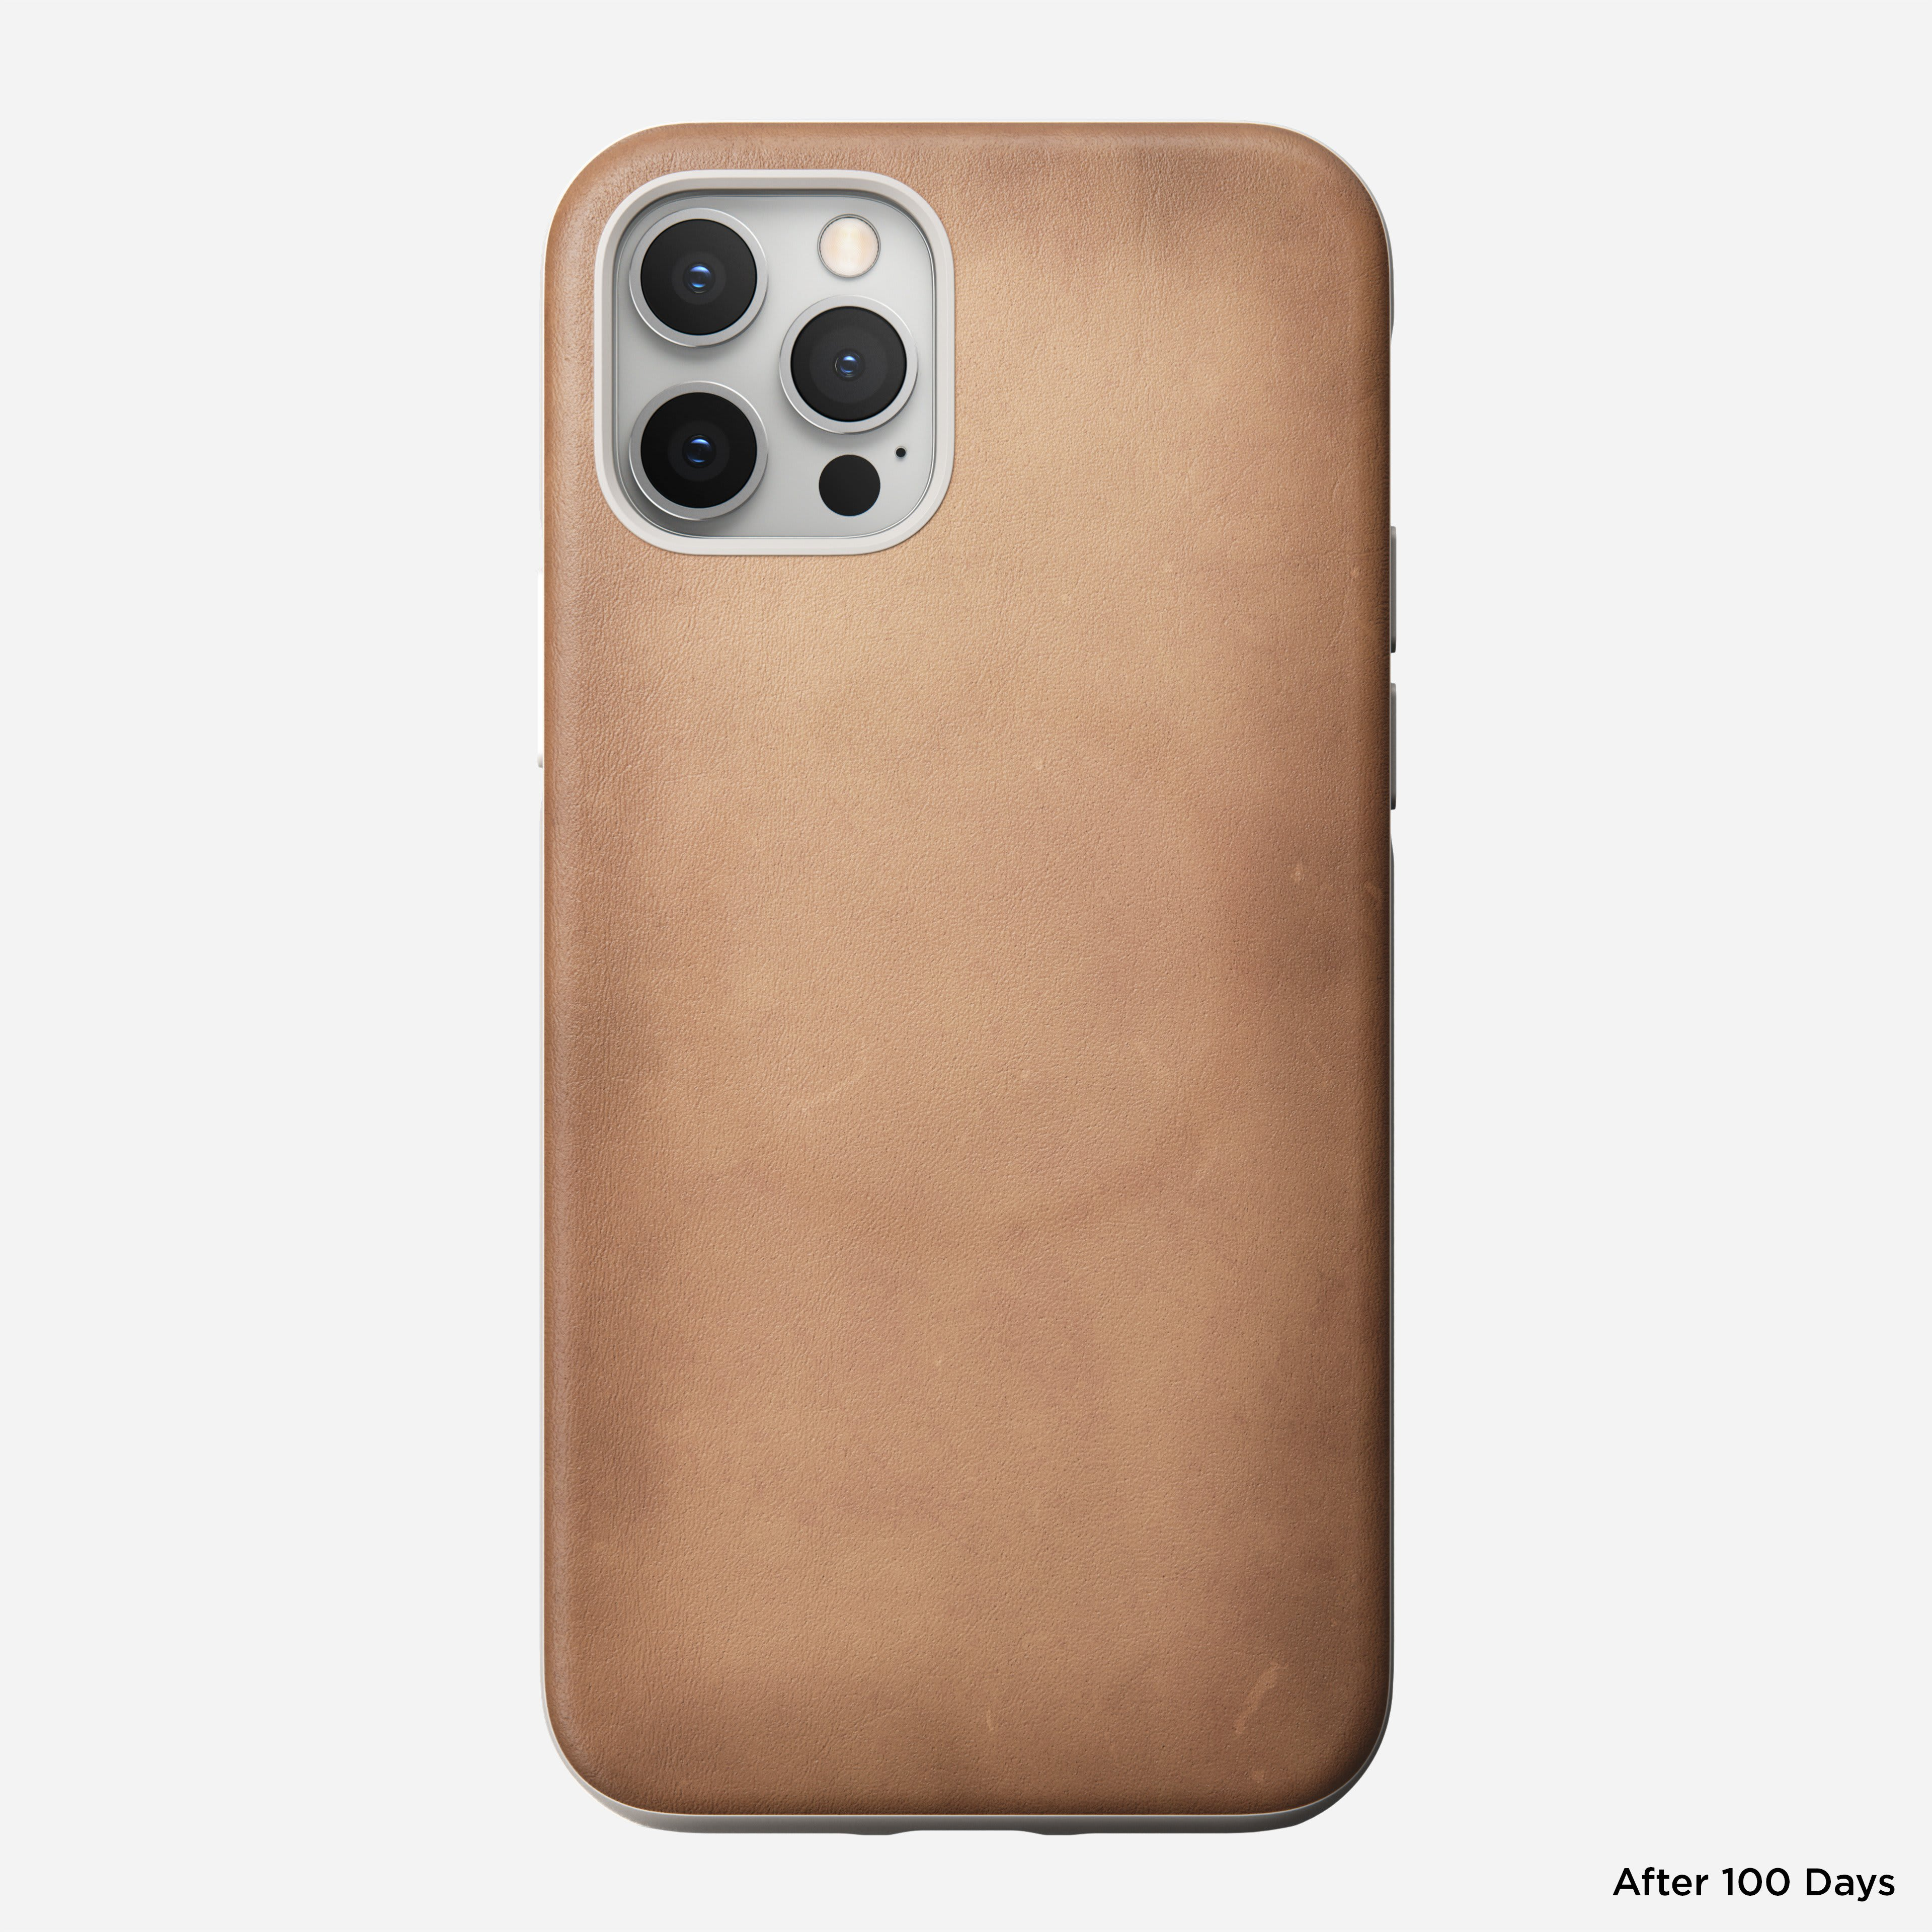 Rugged case magsafe horween leather natural iphone 12 pro